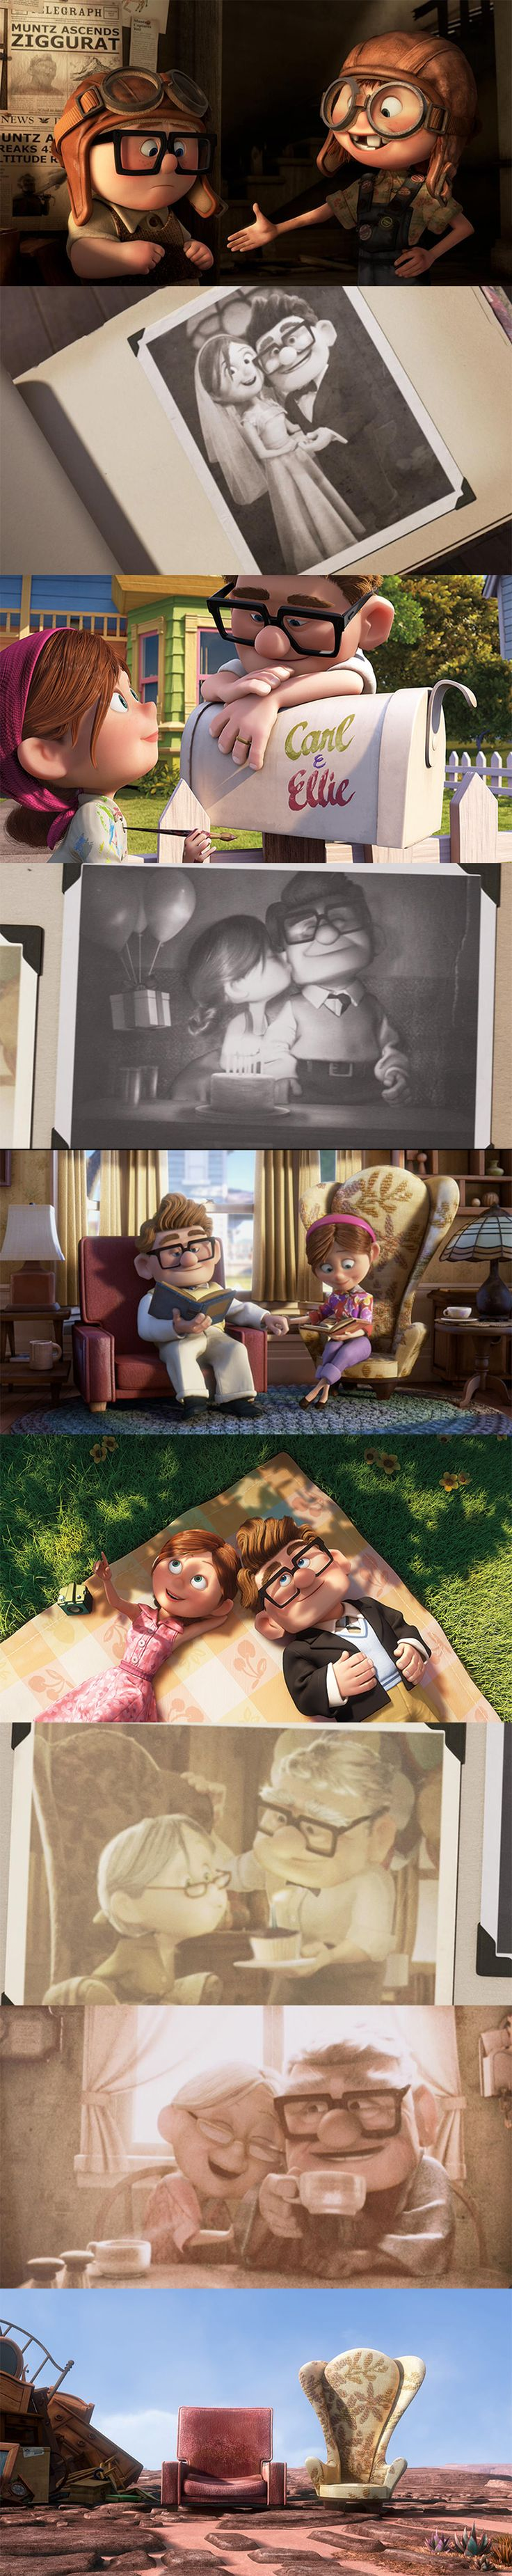 Carl + Ellie | Up: Altas Aventuras